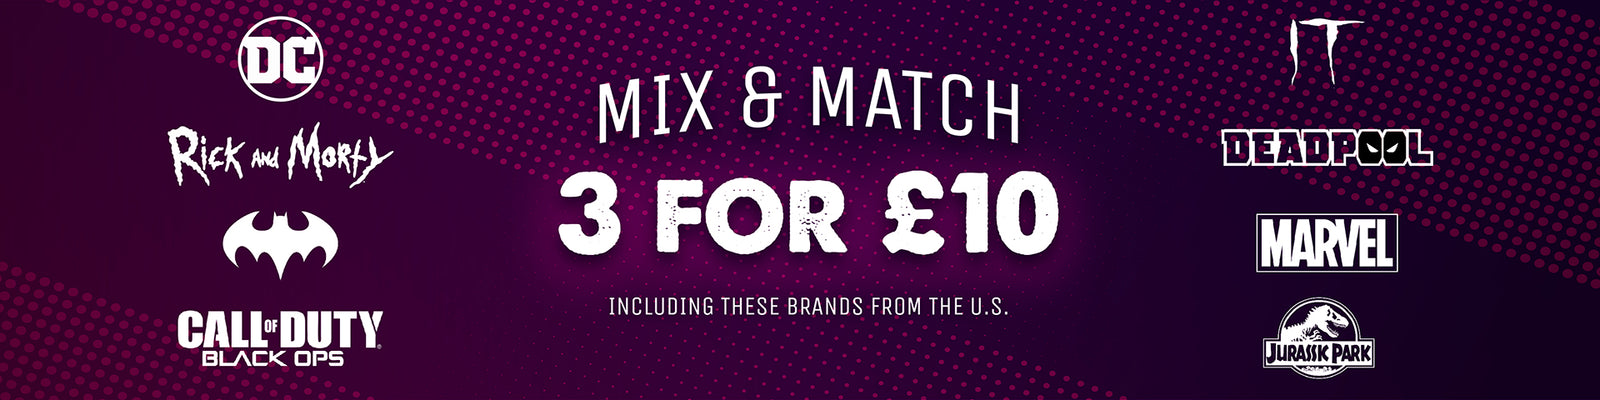 Mix & Match 3 for £10 - Fully Licensed Merch